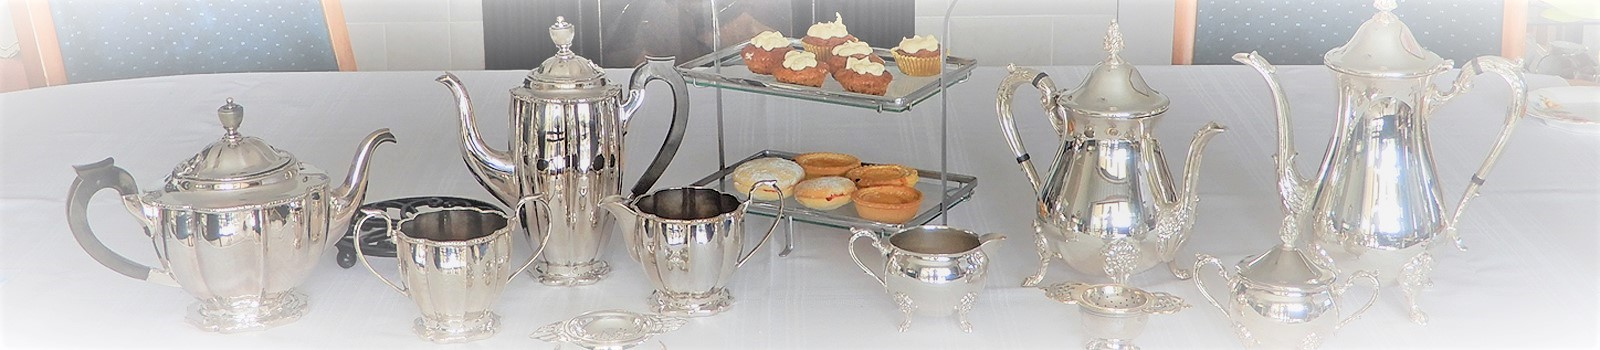 Silverware for high tea hire napier nz (2)